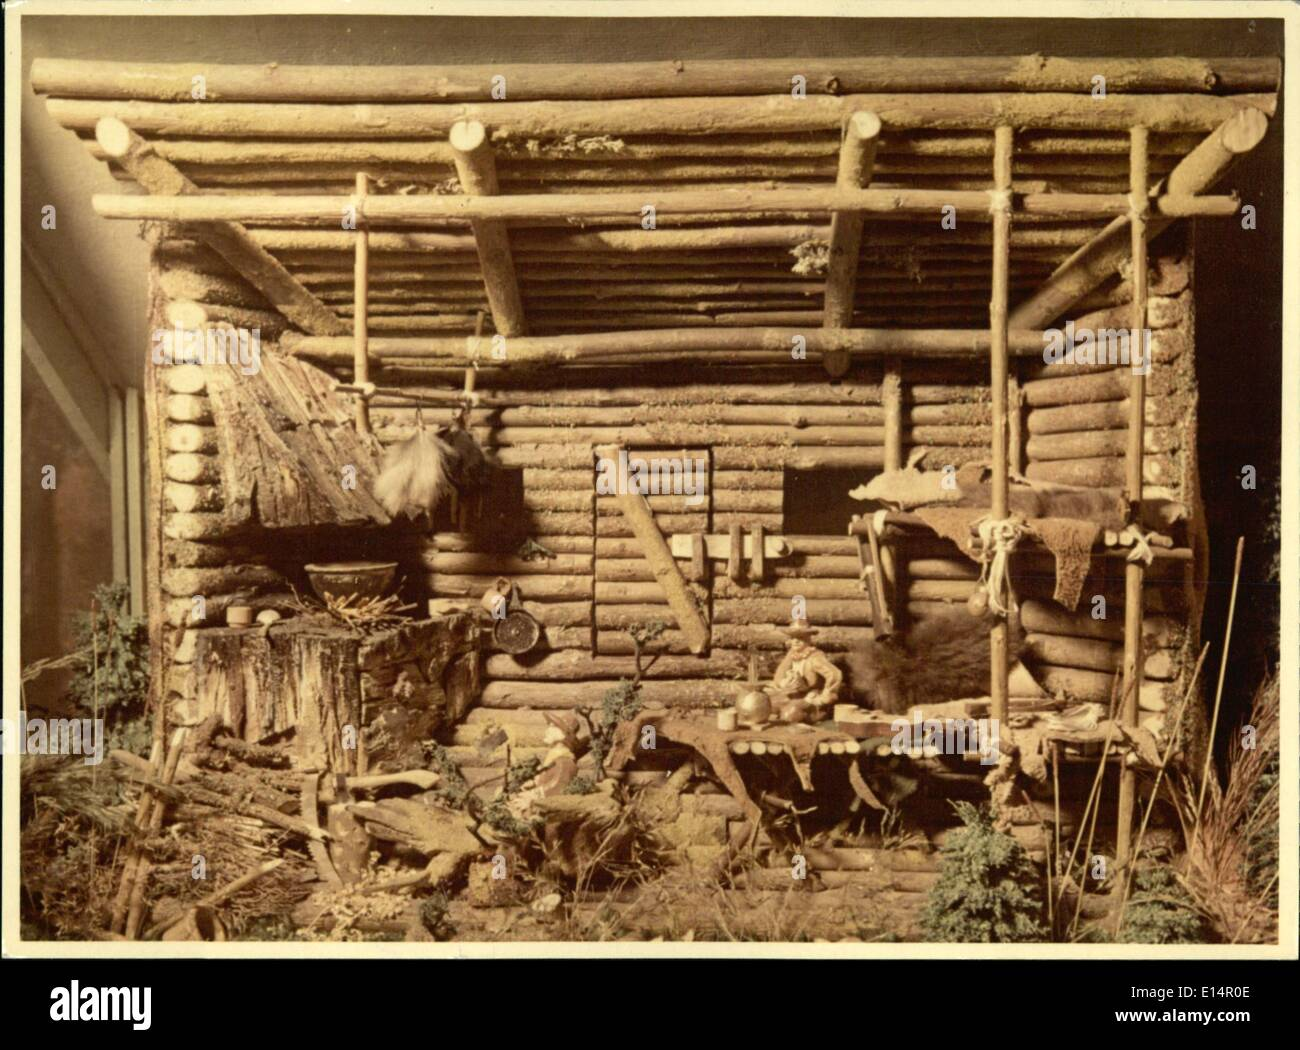 Apr. 18, 2012 - Picture 5 shows : a settler's billet in the west. - Stock Image